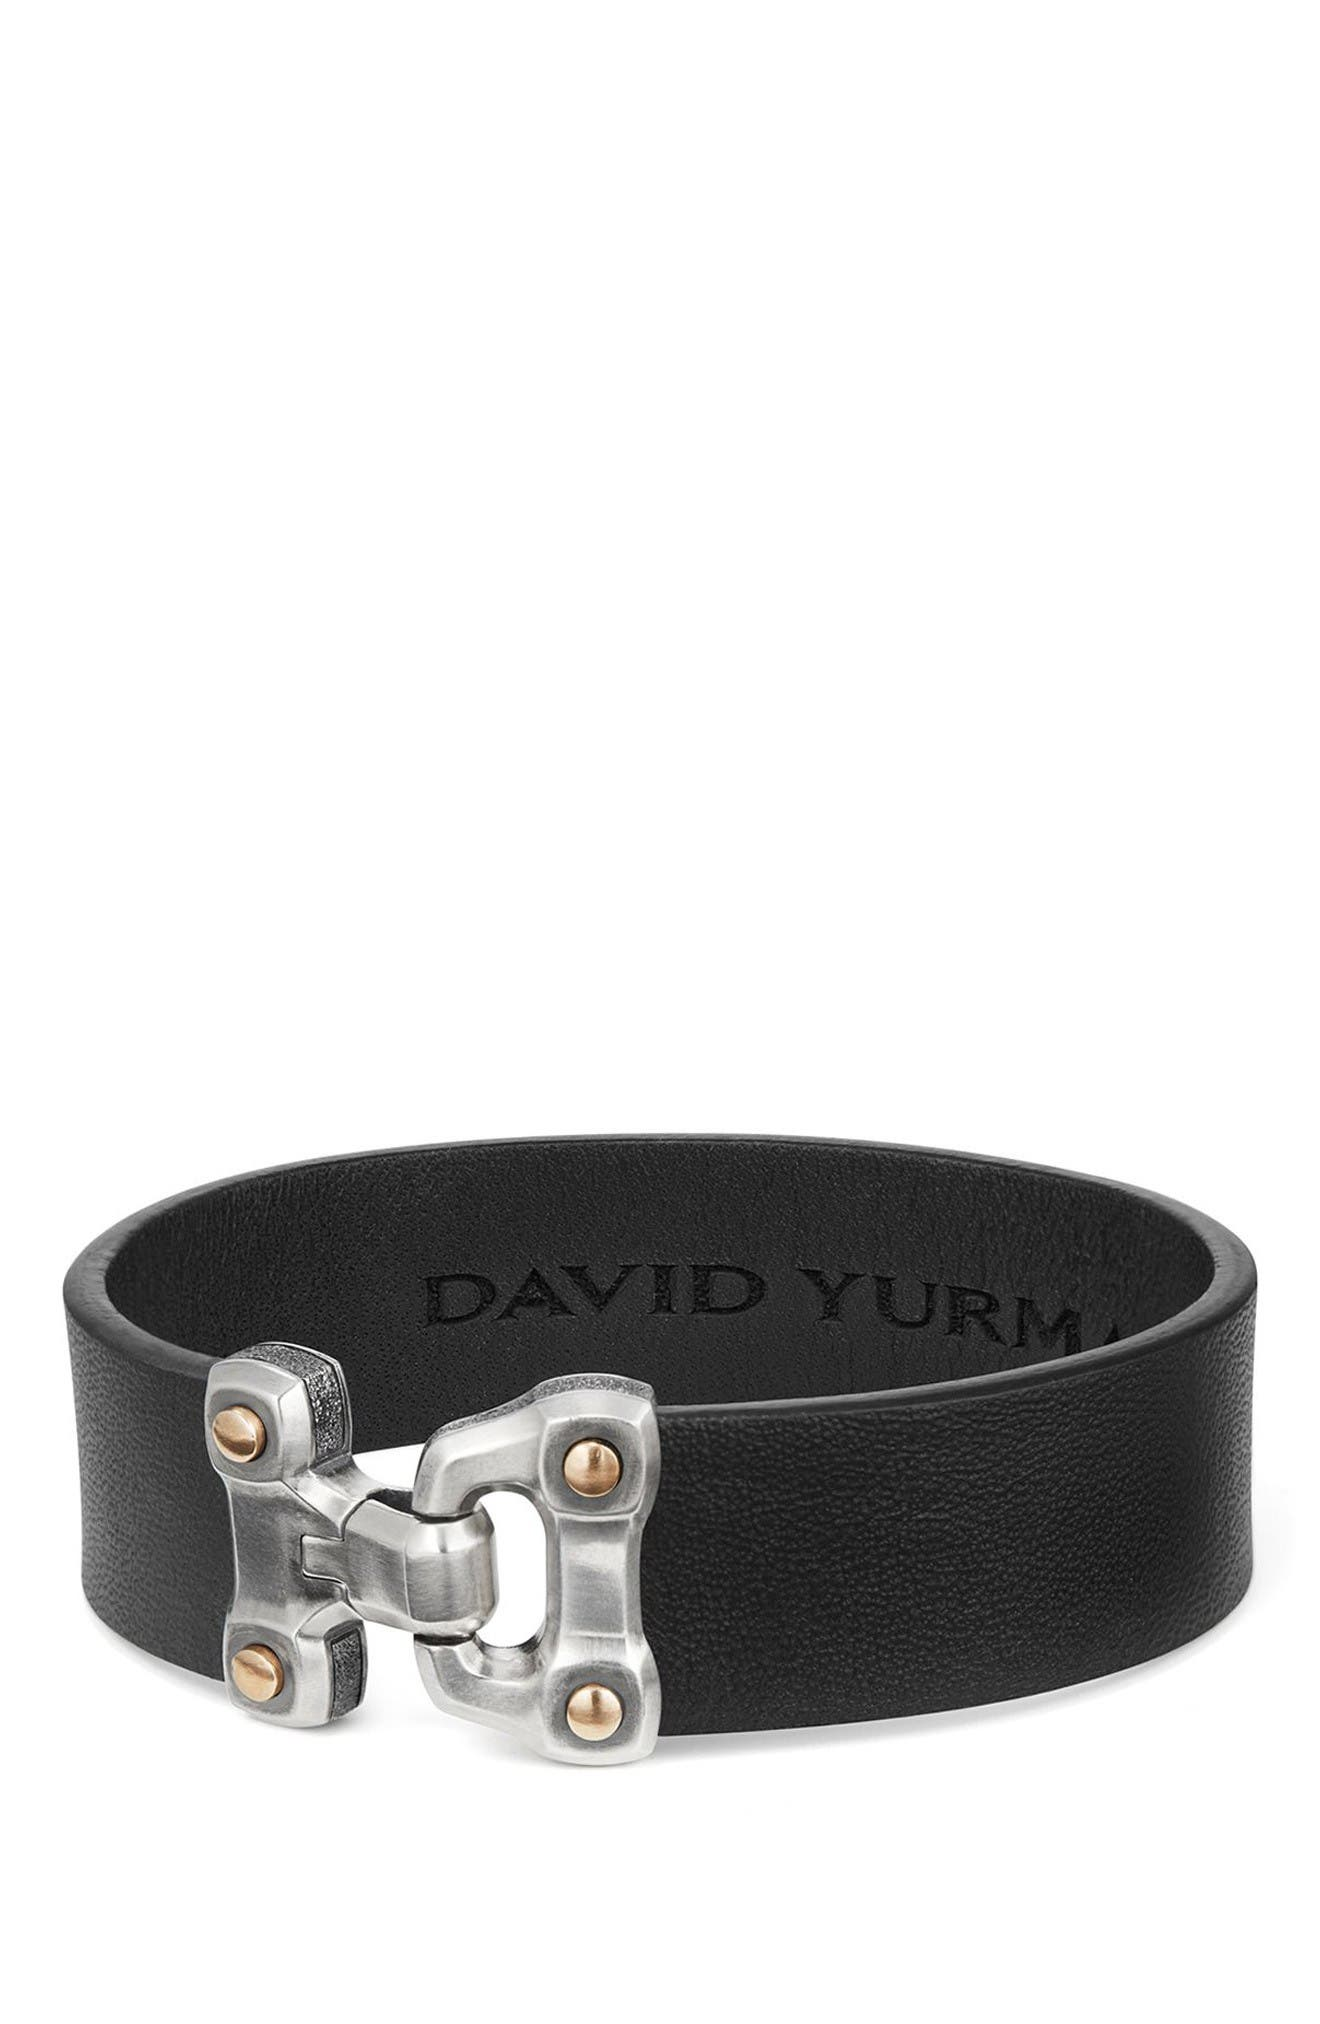 DAVID YURMAN Anvil Leather Bracelet